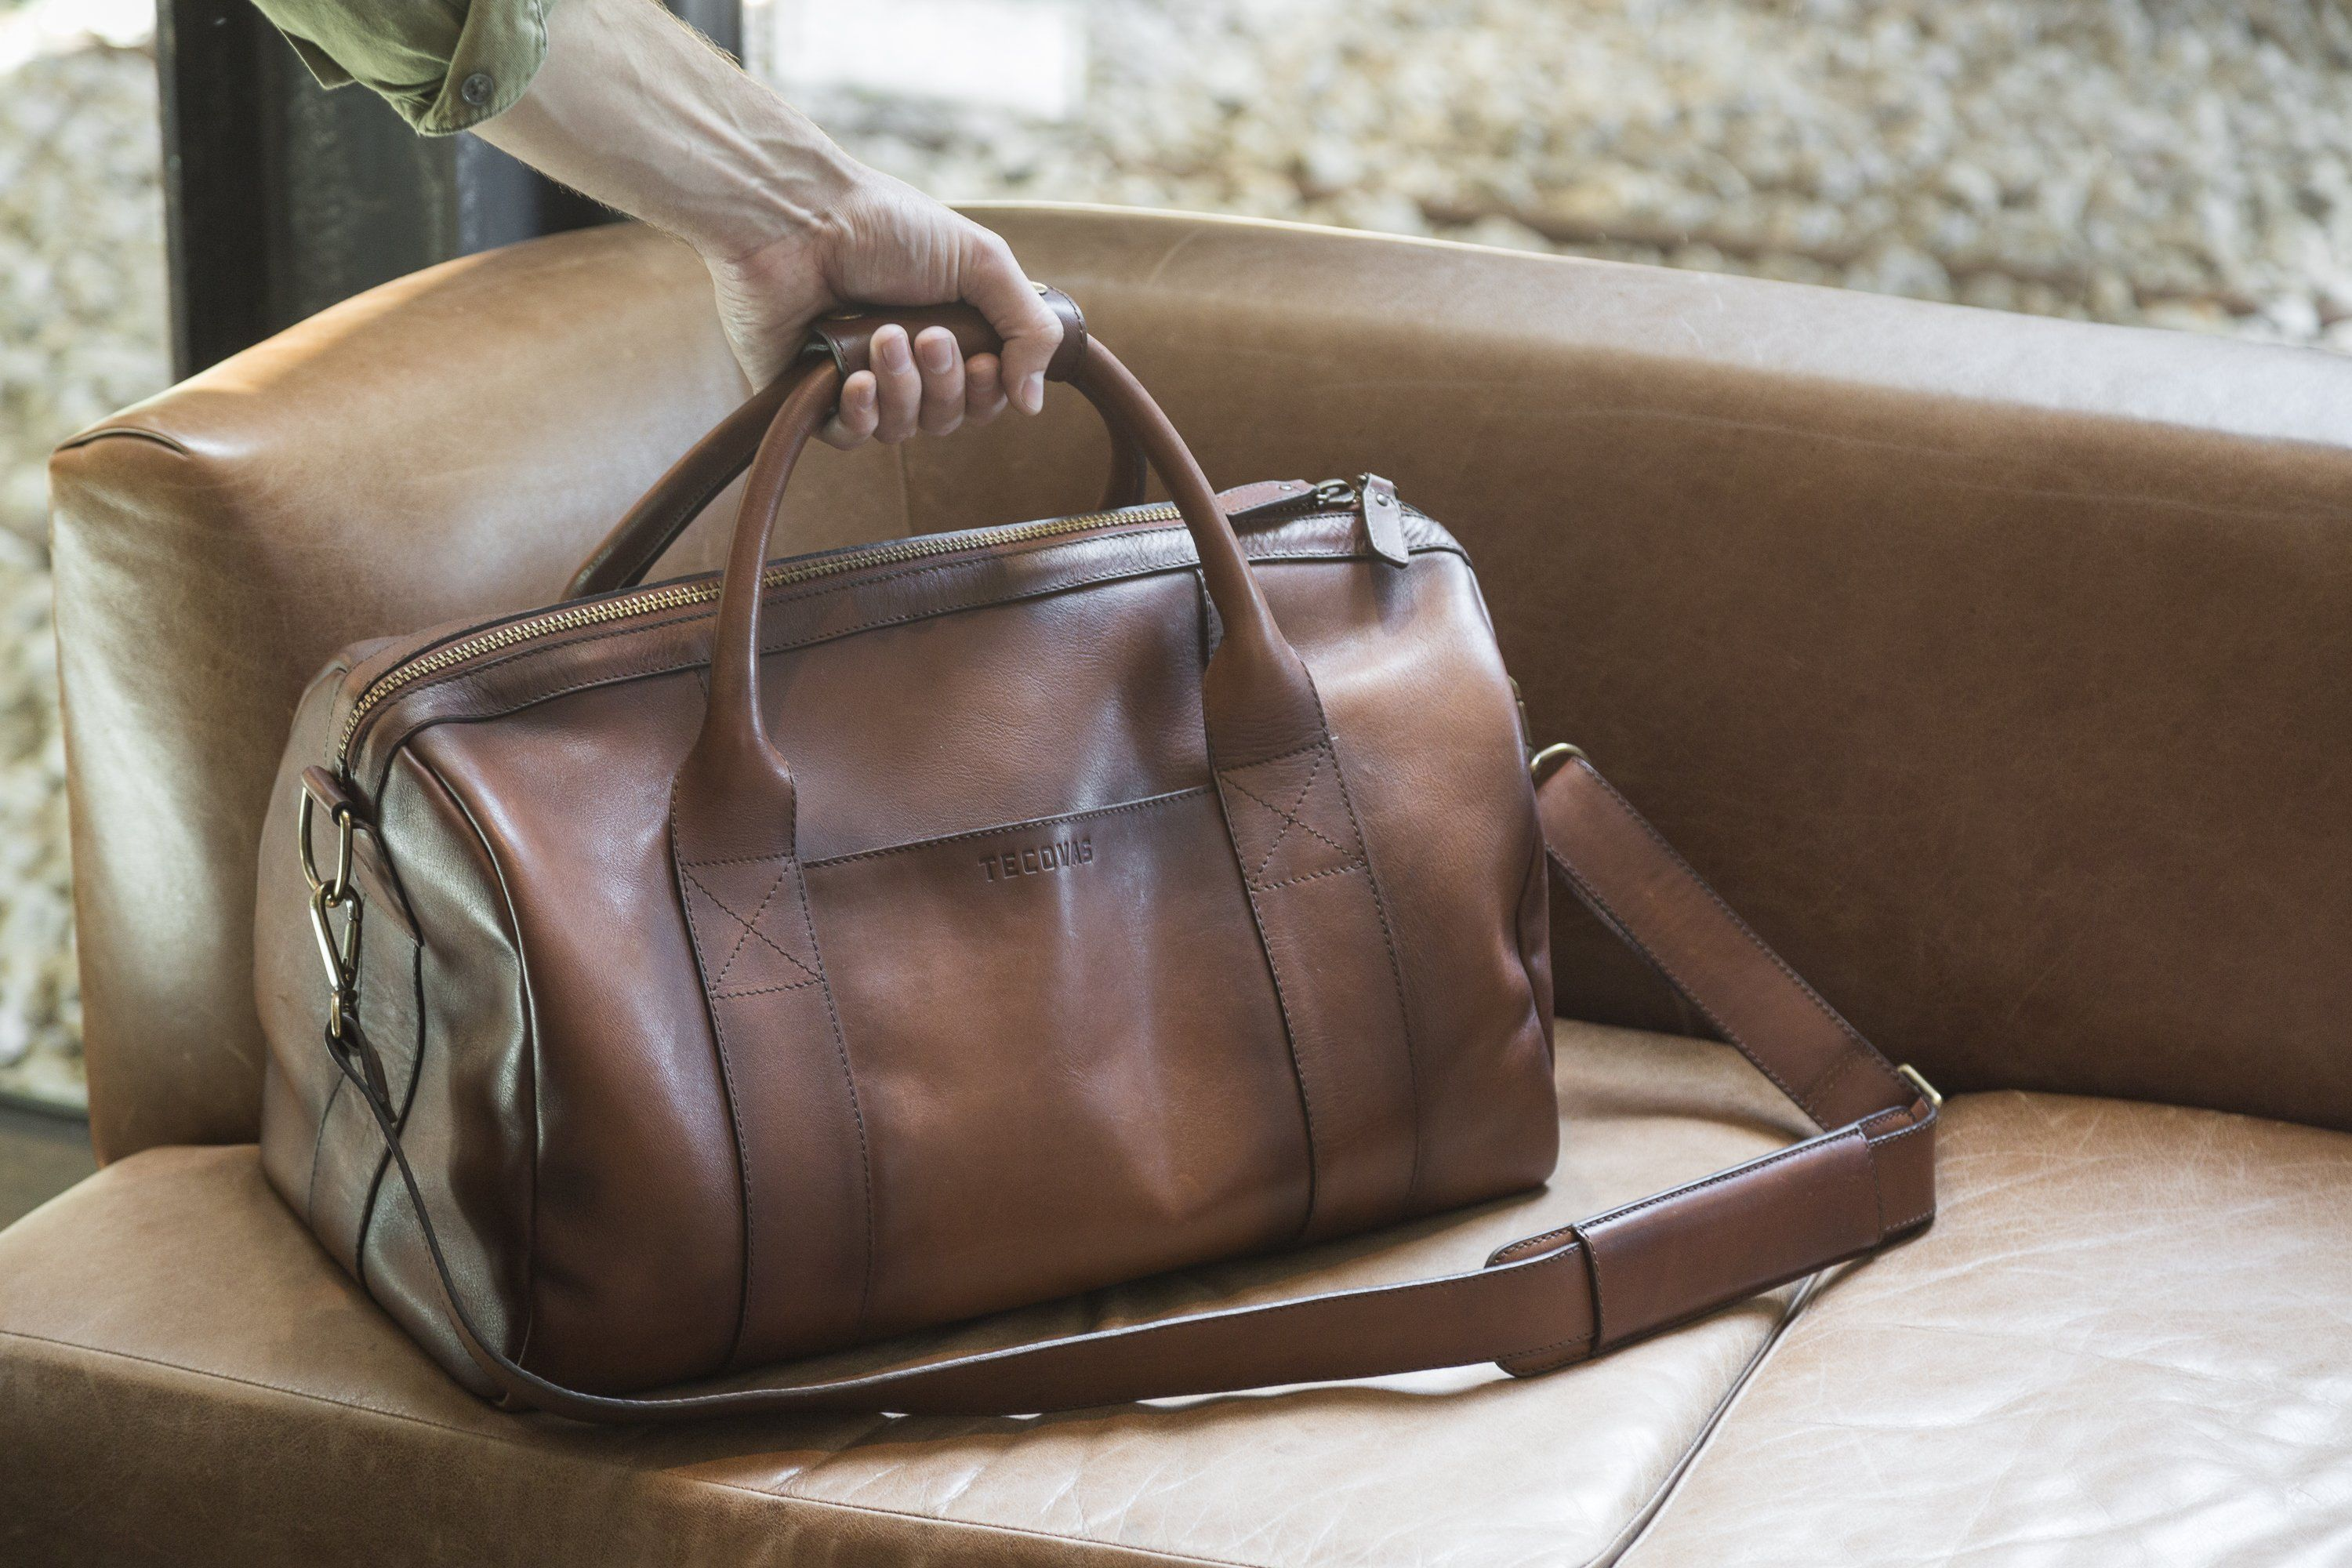 98b2bb4ae Medium Weekender Duffle - A 100% Handmade Leather Bag | Tecovas ...